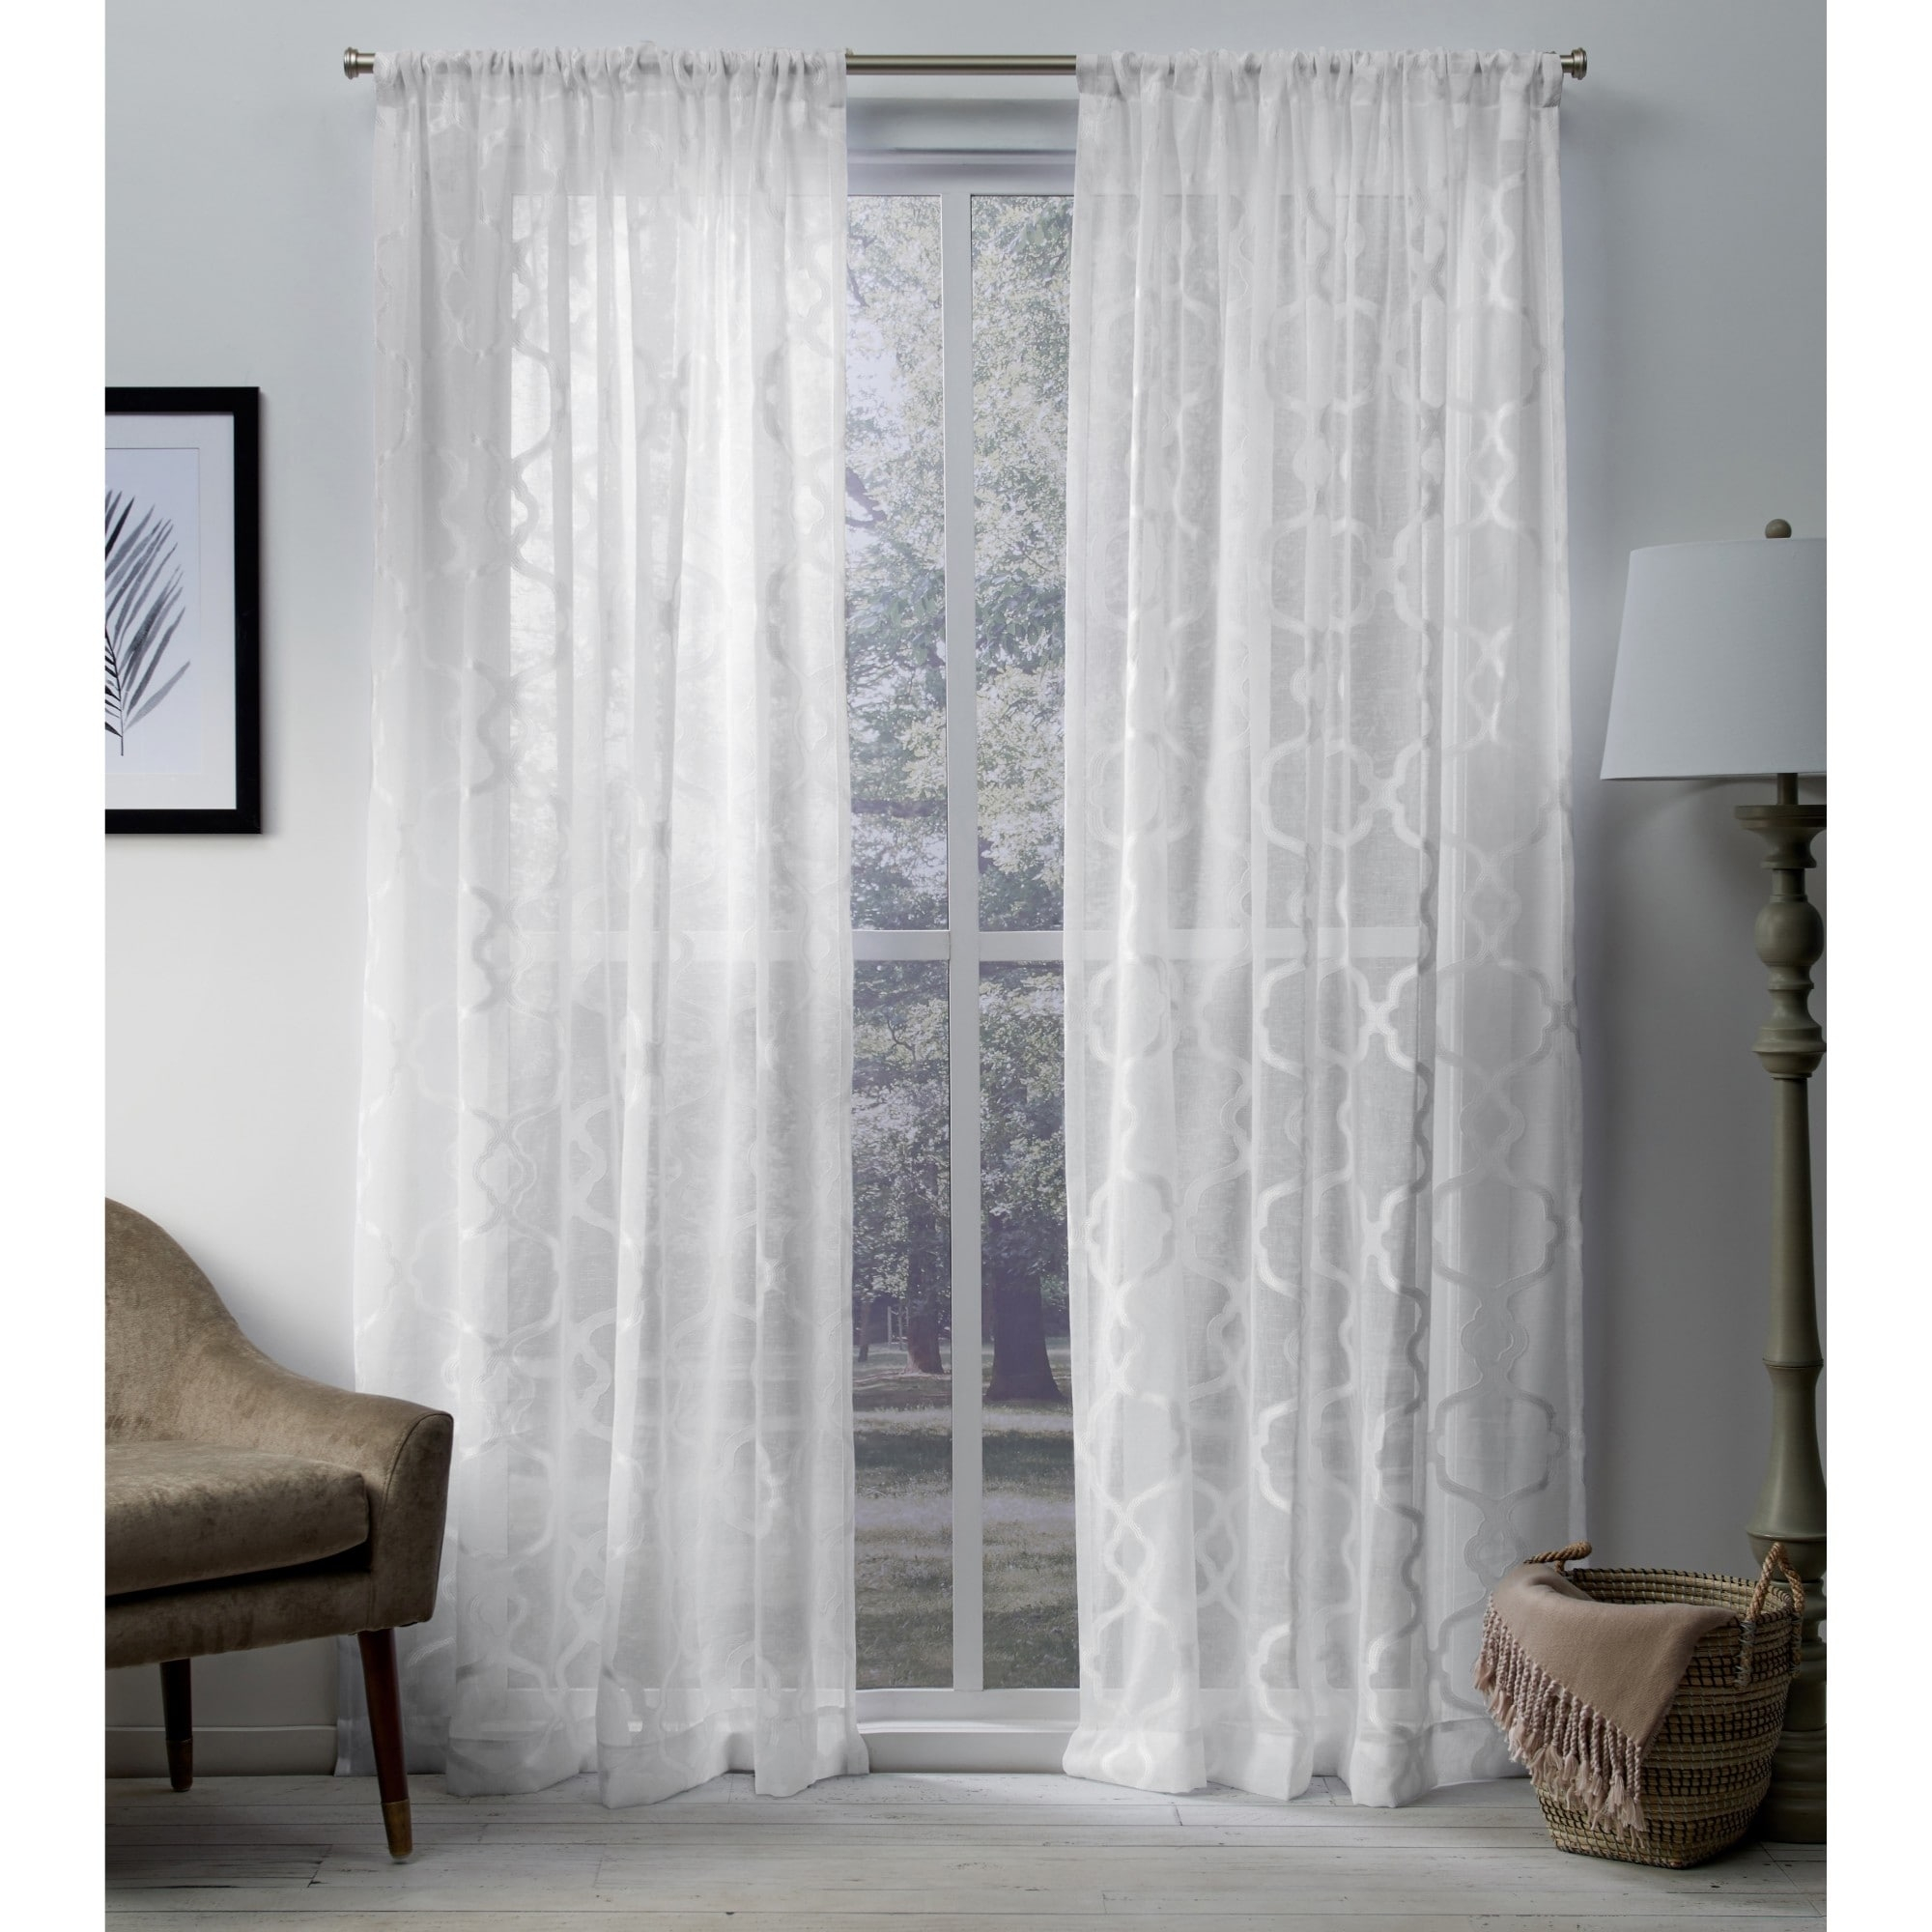 Ati Home Jacquard Sheer Rod Pocket Top Curtain Panel Pair intended for Luxury Collection Venetian Sheer Curtain Panel Pairs (Image 2 of 20)